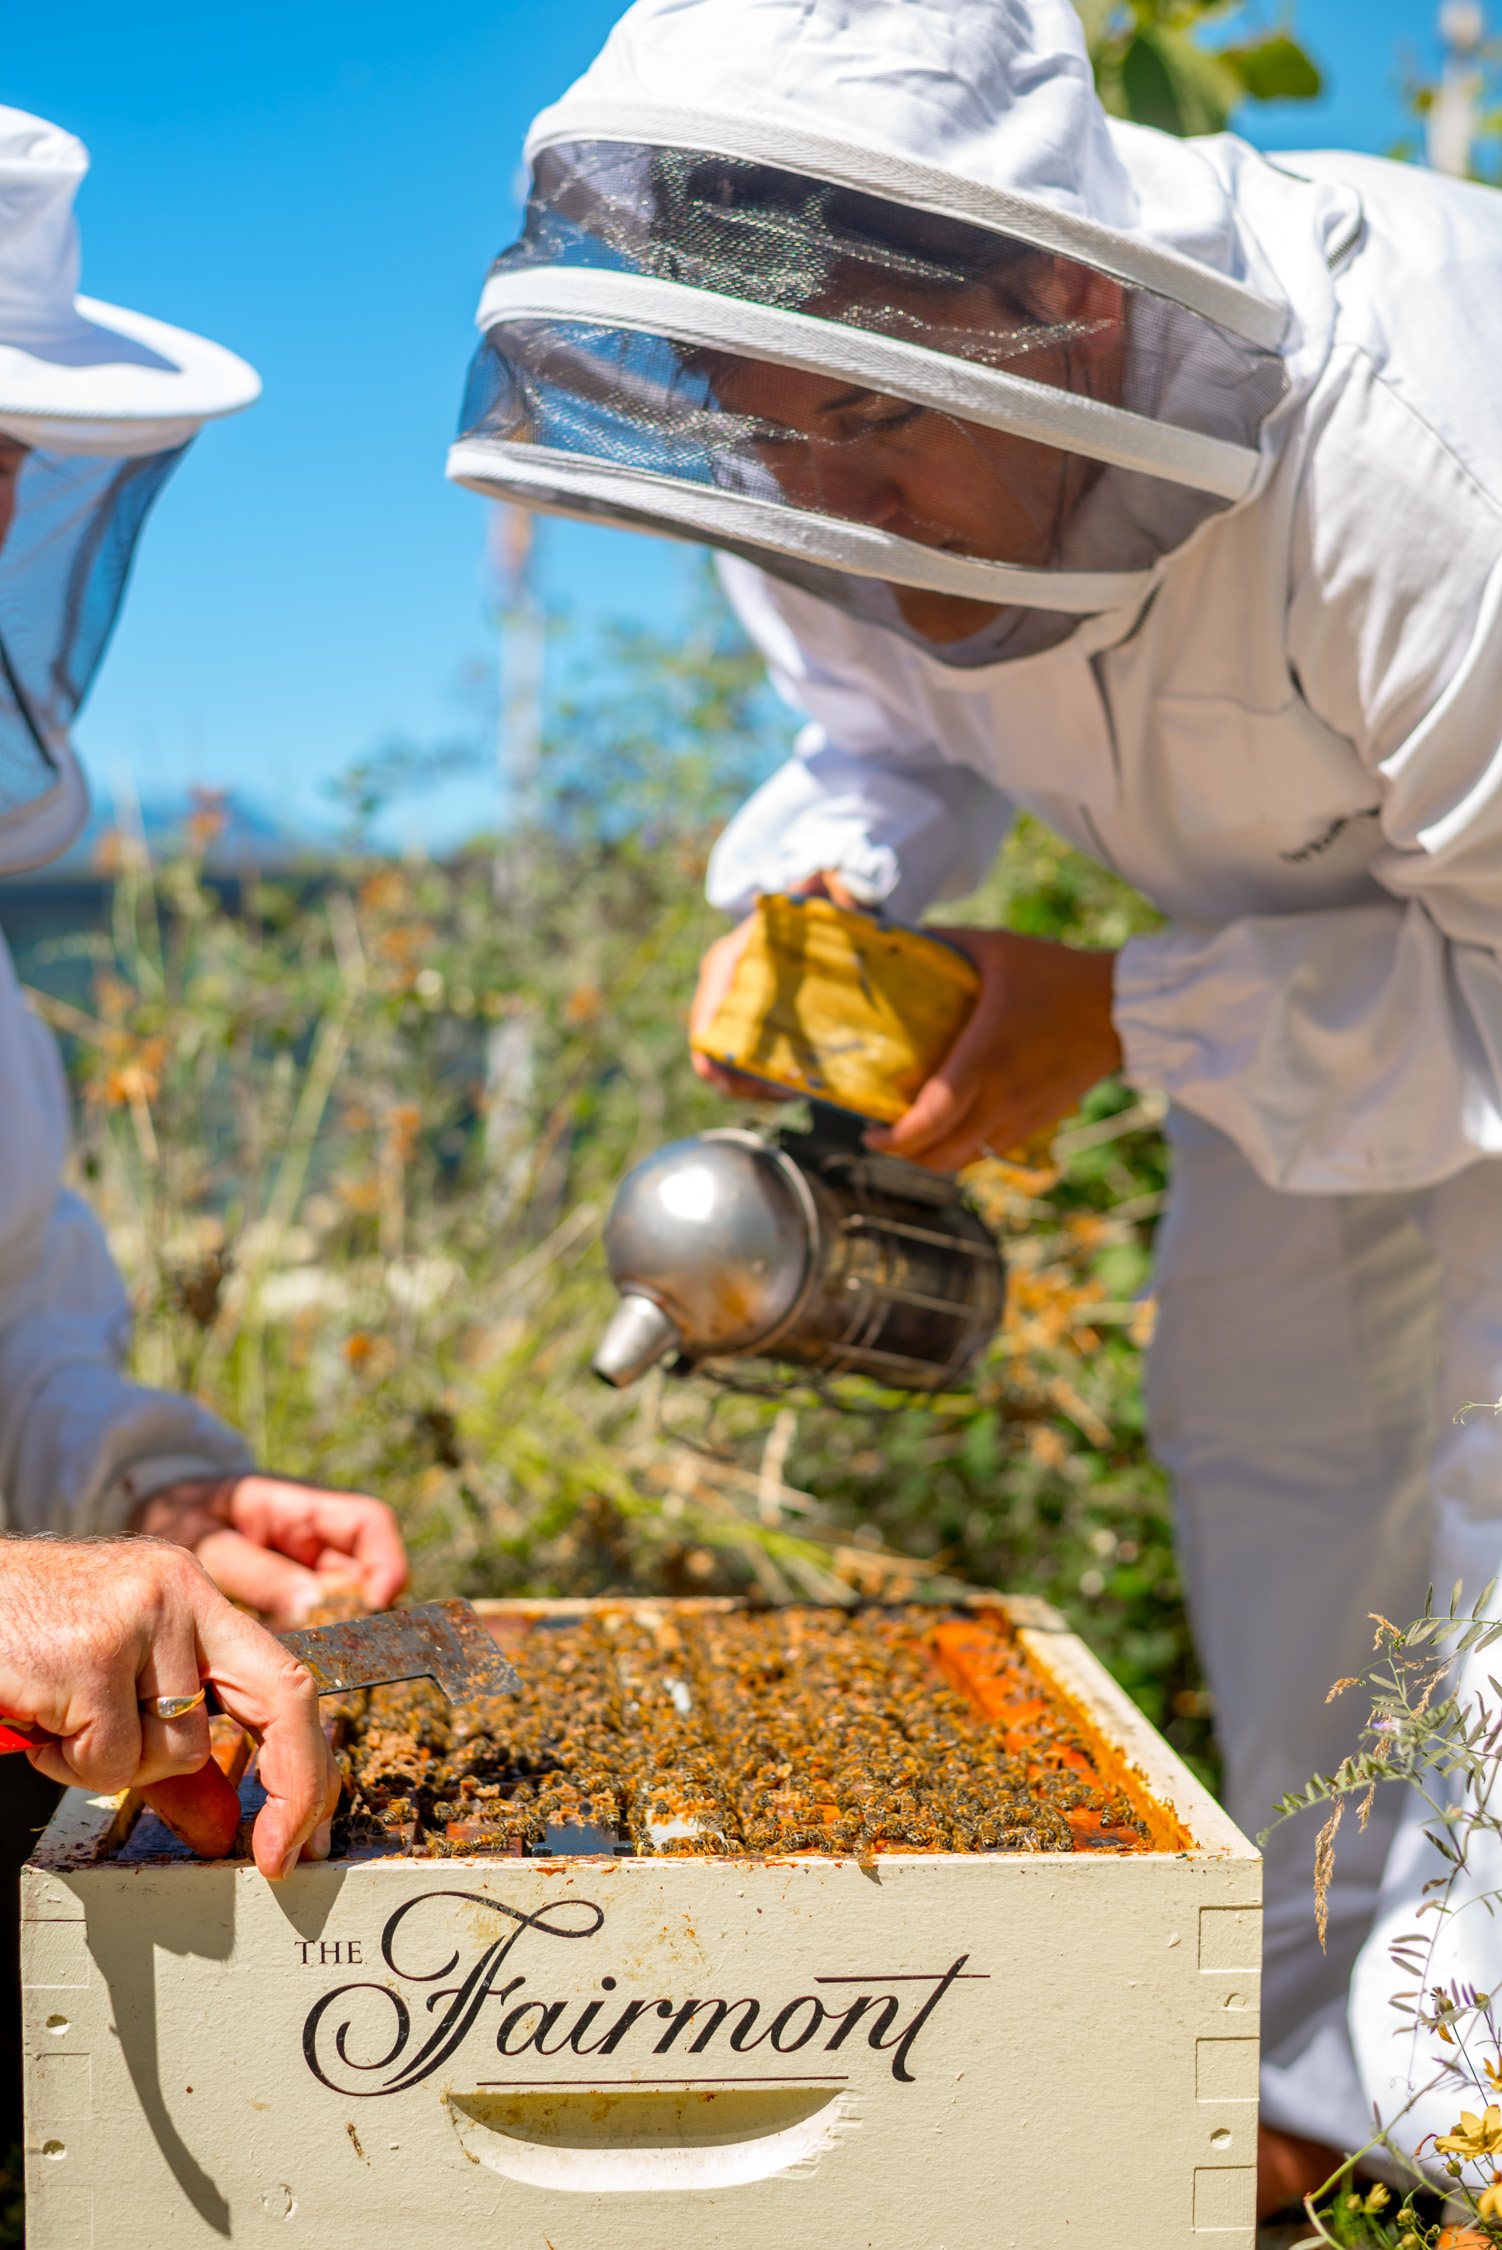 Would not have thought we'd learn bee keeping in Vancouver!